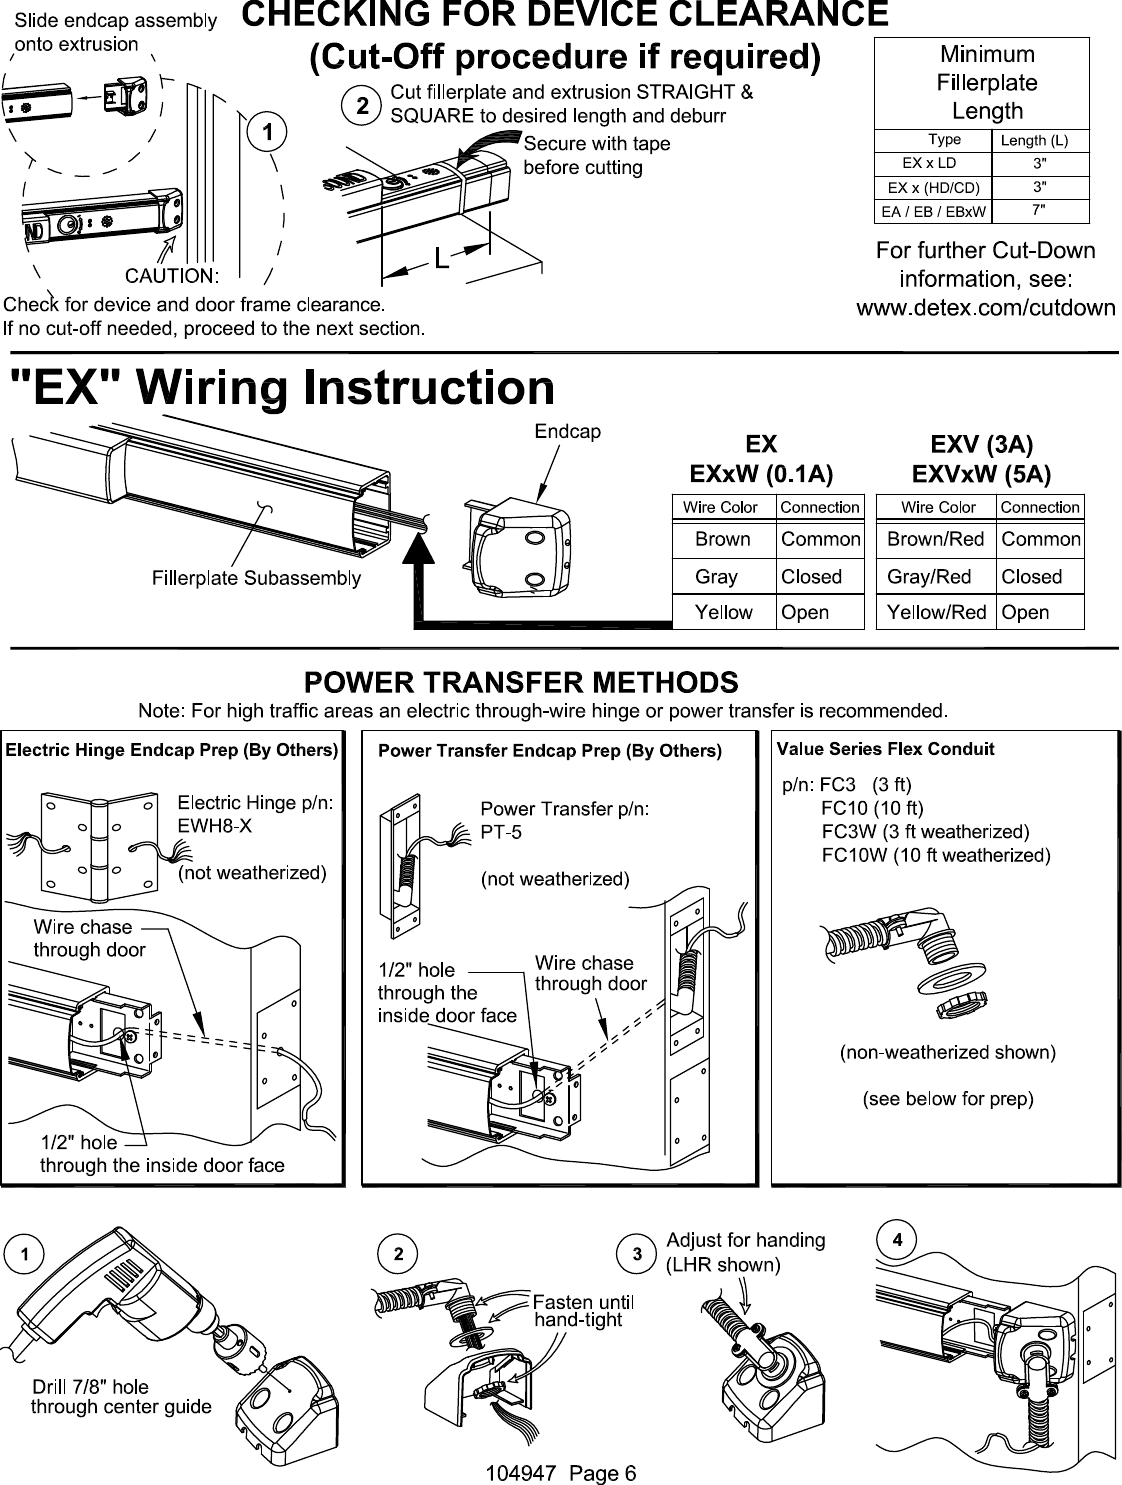 Detex C Electrical Instructions For Value Series Eb Ea Ex And Ebx Wiring Diagrams Page 6 Of 7